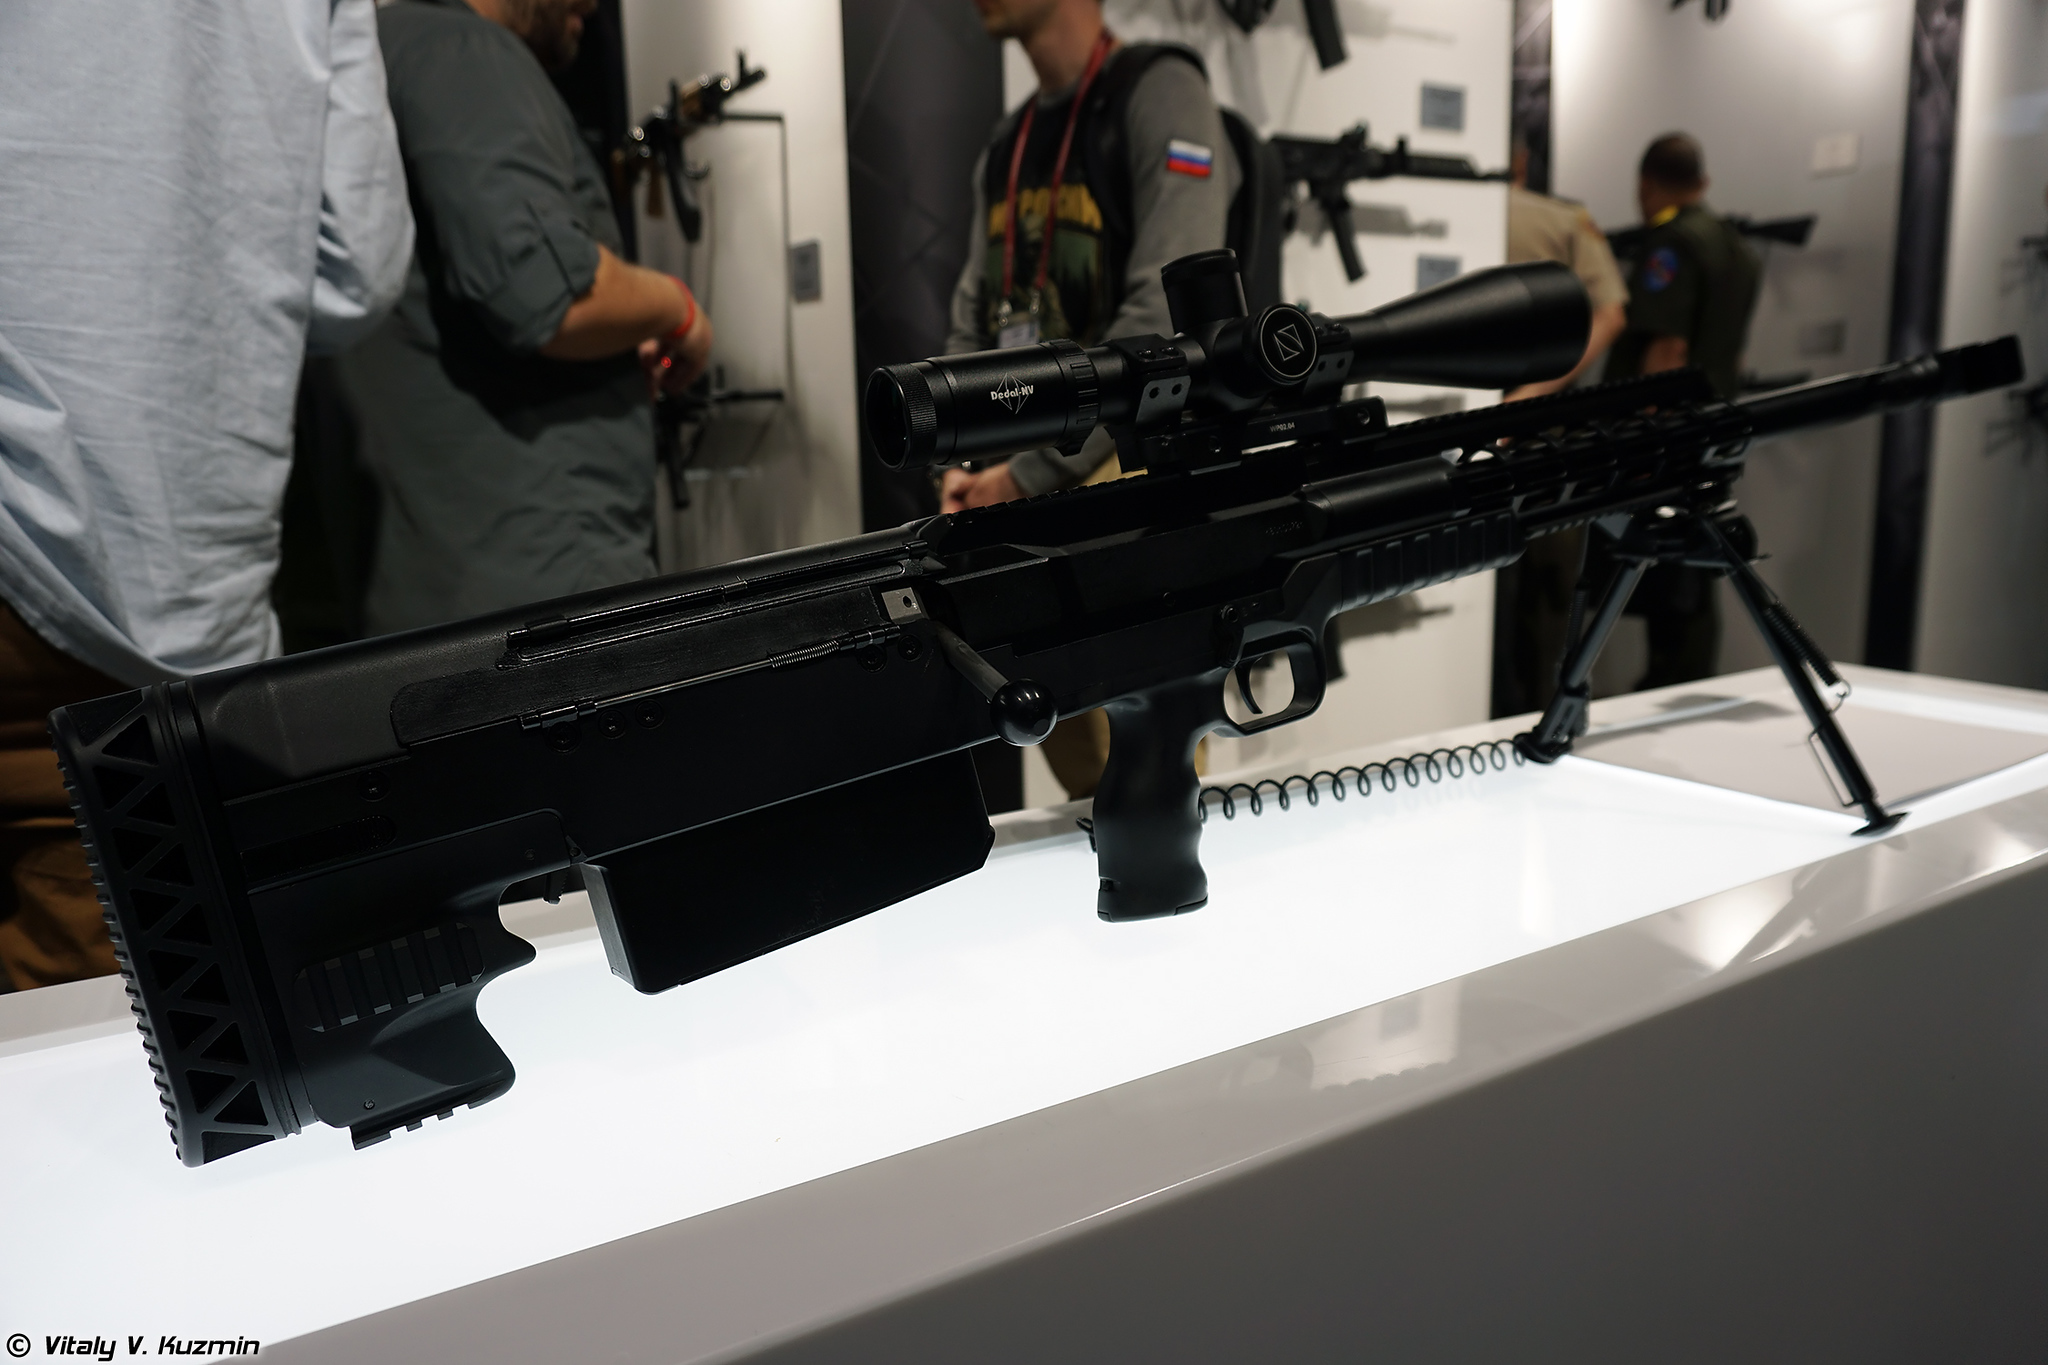 Russian Assault Rifles & Machine Guns Thread: #2 - Page 9 Army2019Pavilions-030-X4